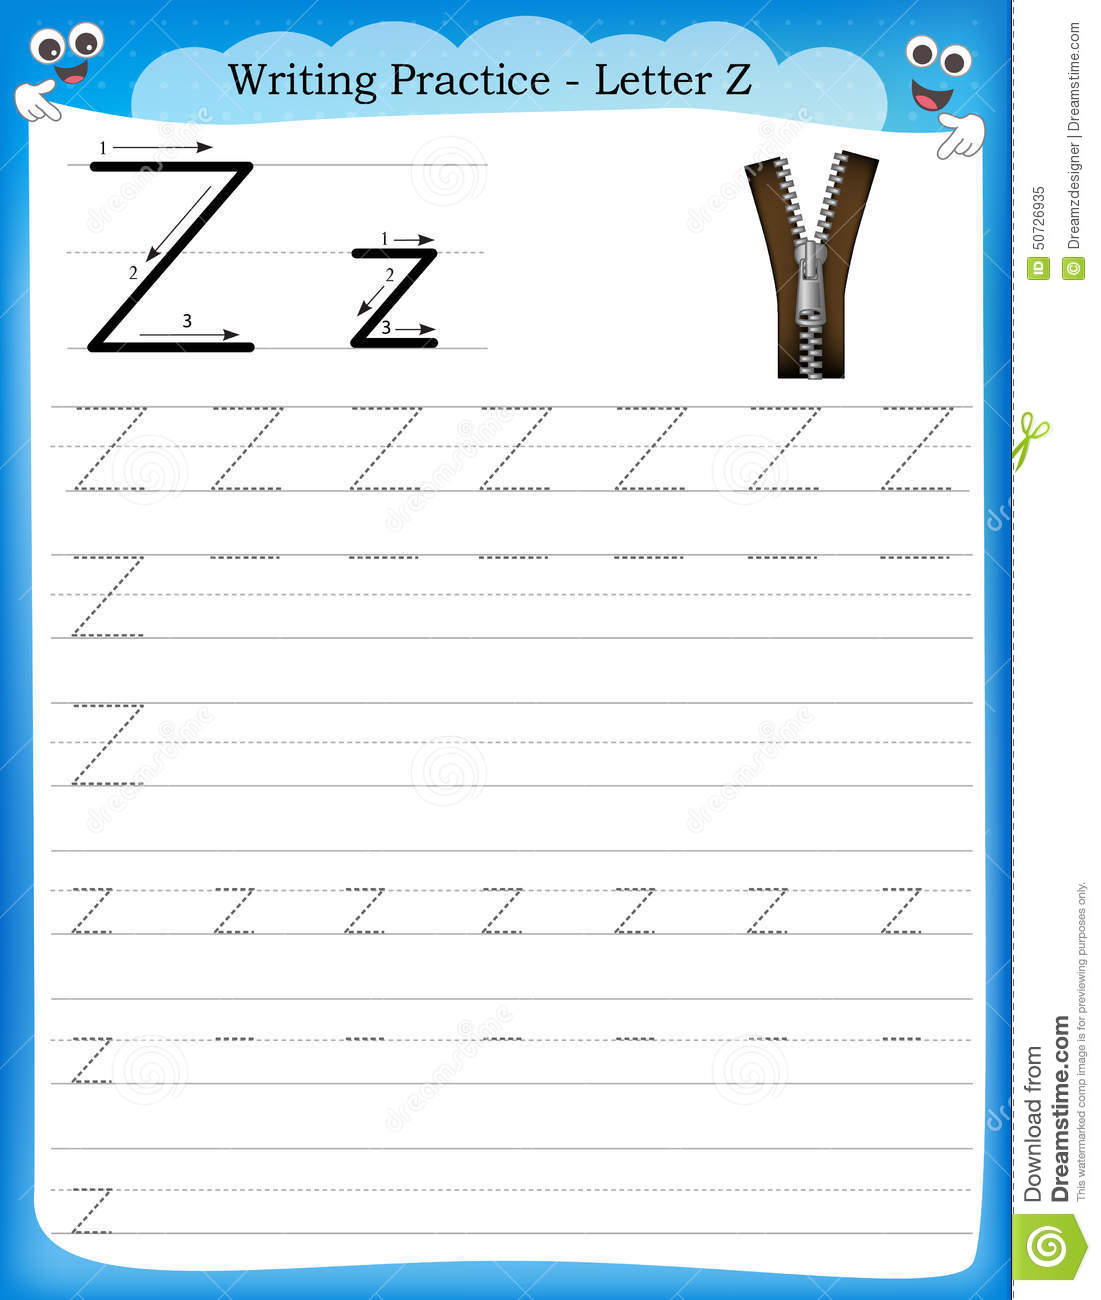 Writing Practice Letter Z Cartoon Vector